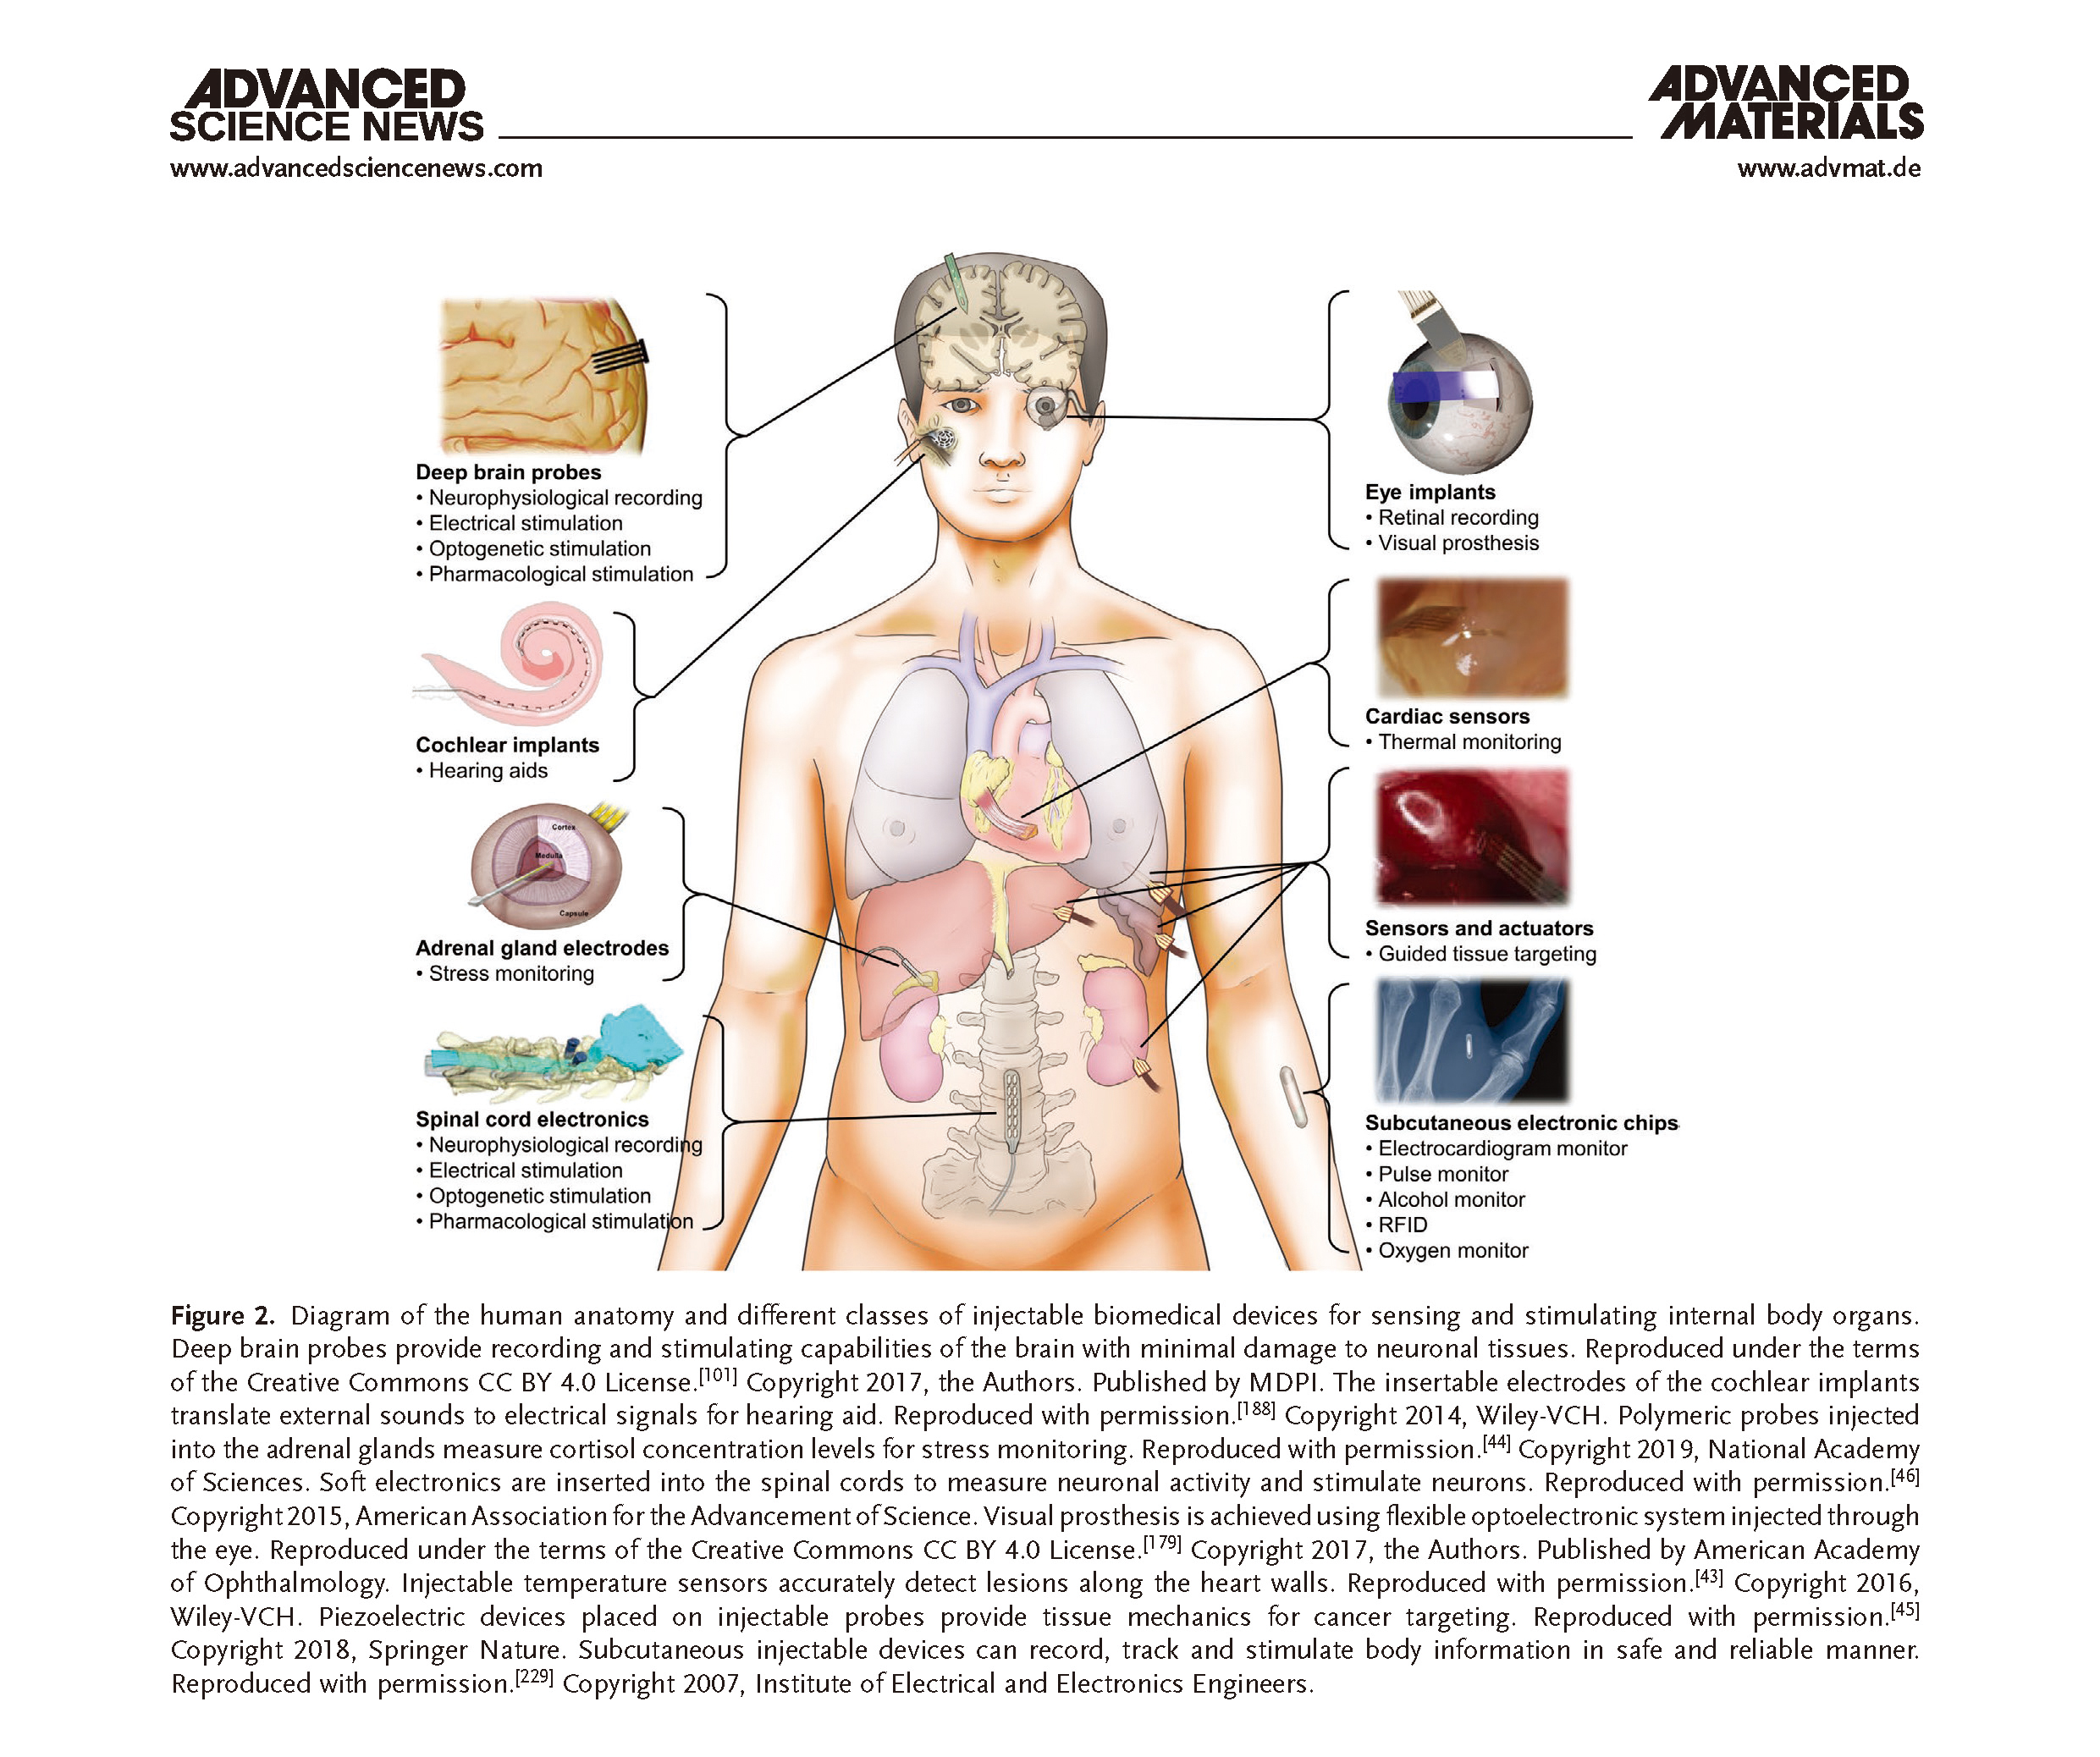 Injectable Biomedical Devices for Sensing and Stimulating Internal Body Organs